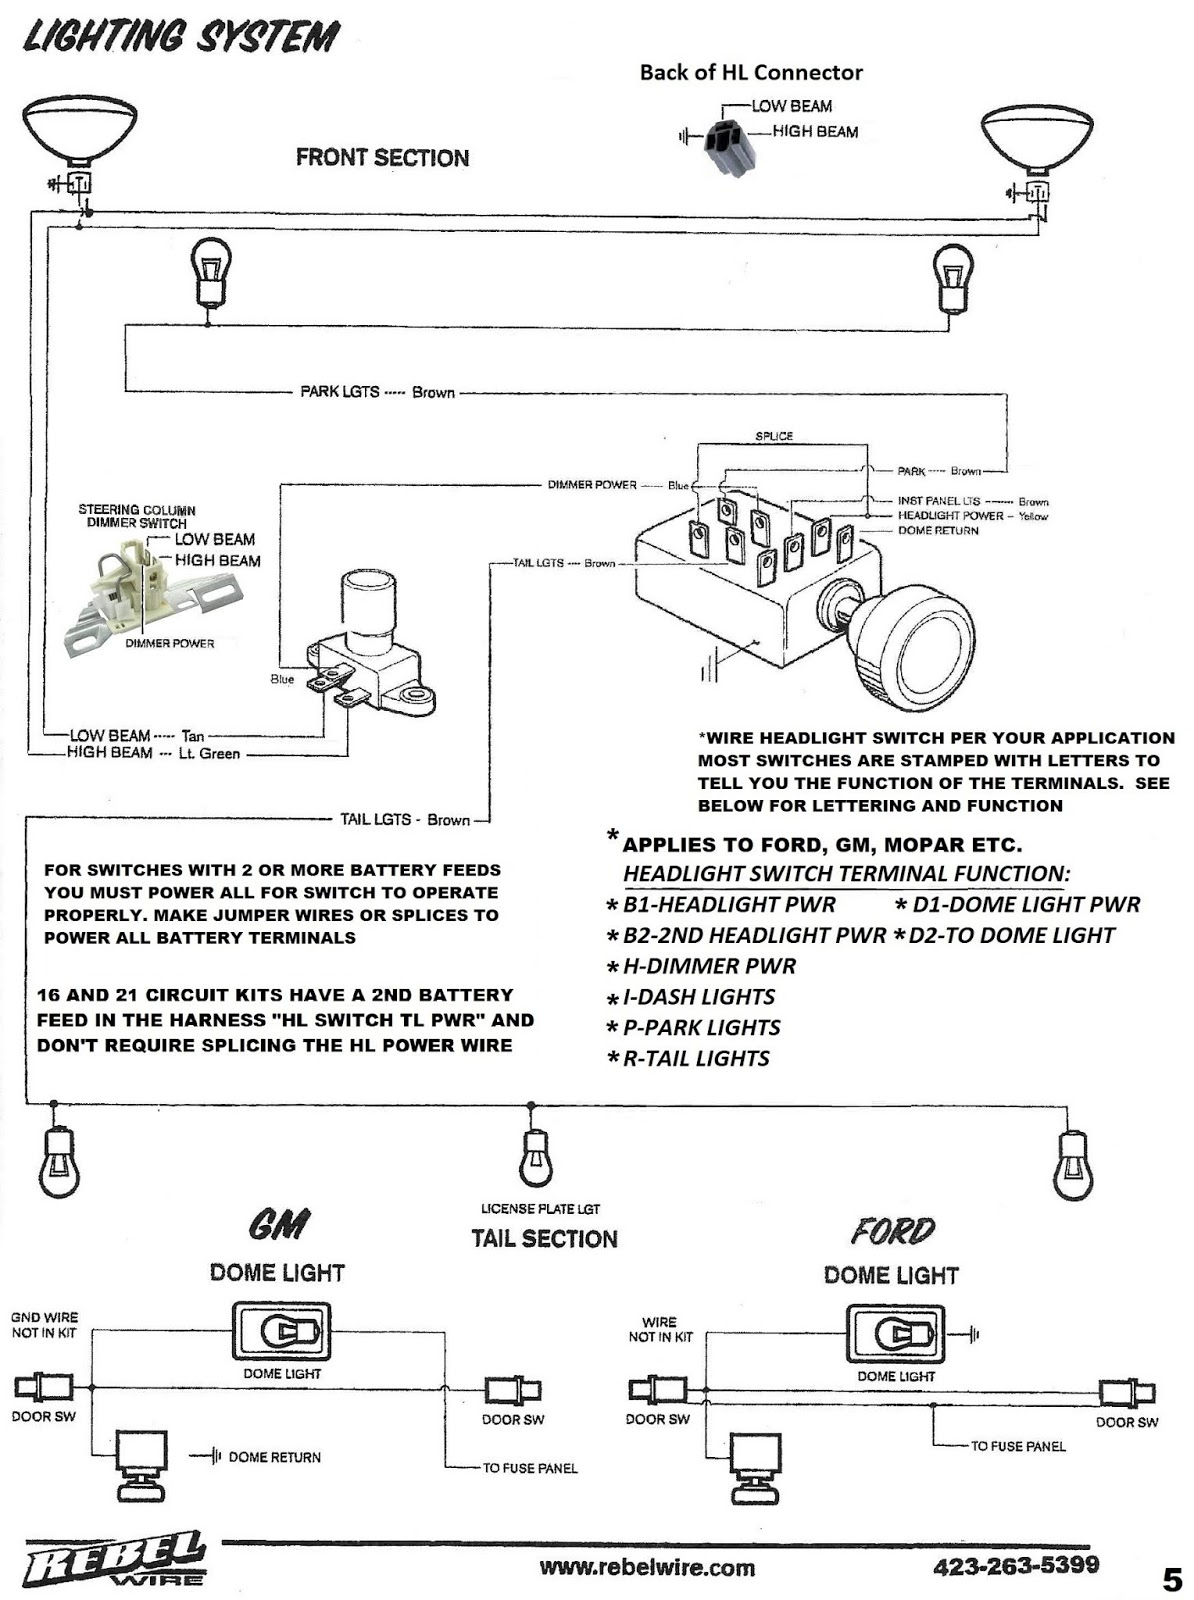 street rod wiring diagram vp instrument cluster help asapl3vndashwiringjpg wiring diagramdome light wiring diagram together with chevy dome light wiring [ 1194 x 1600 Pixel ]